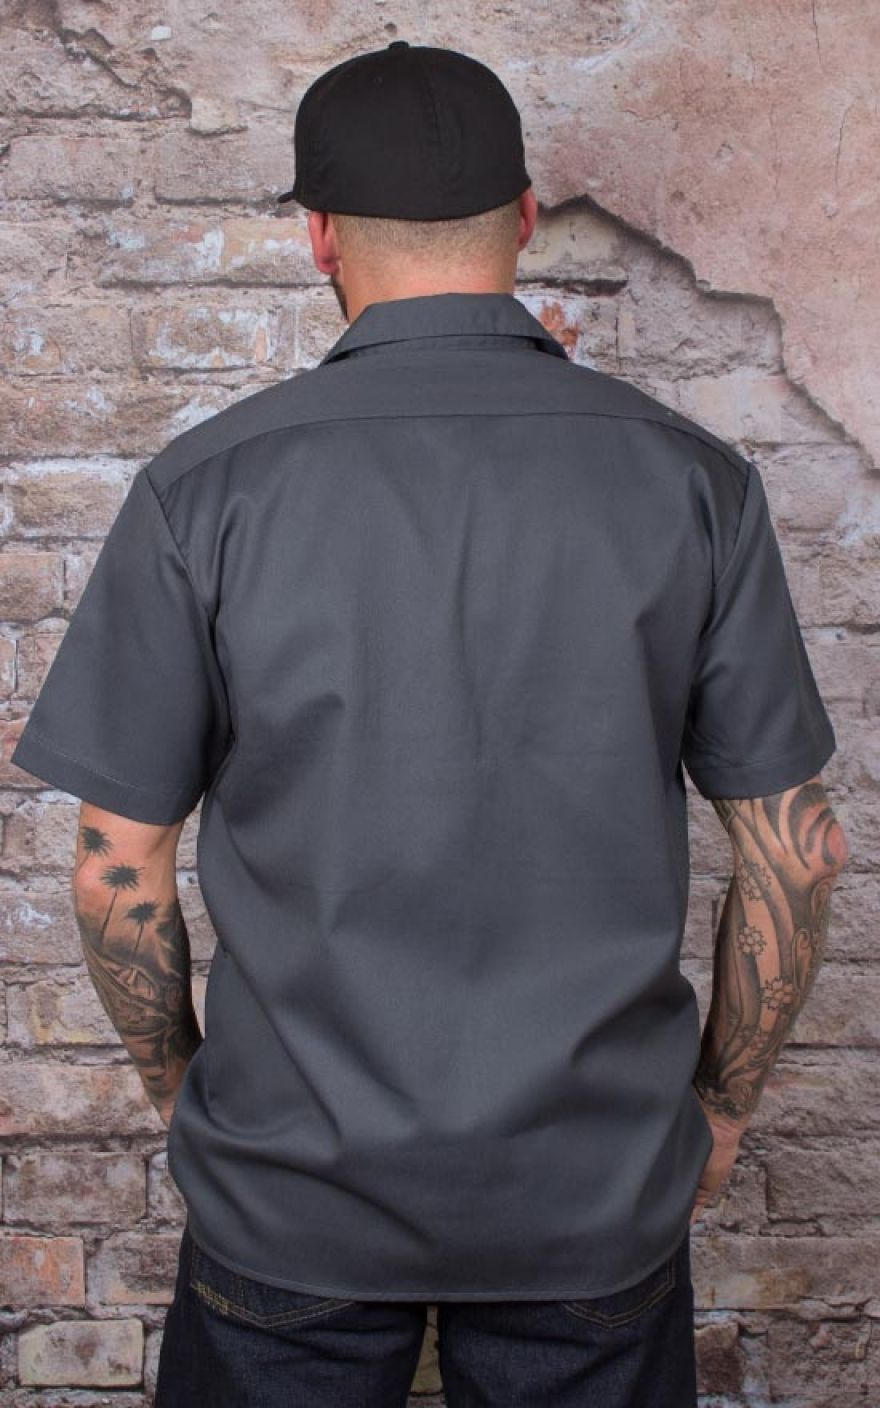 a2a26c24e9 Dickies Work Shirts Wholesale Canada – EDGE Engineering and ...